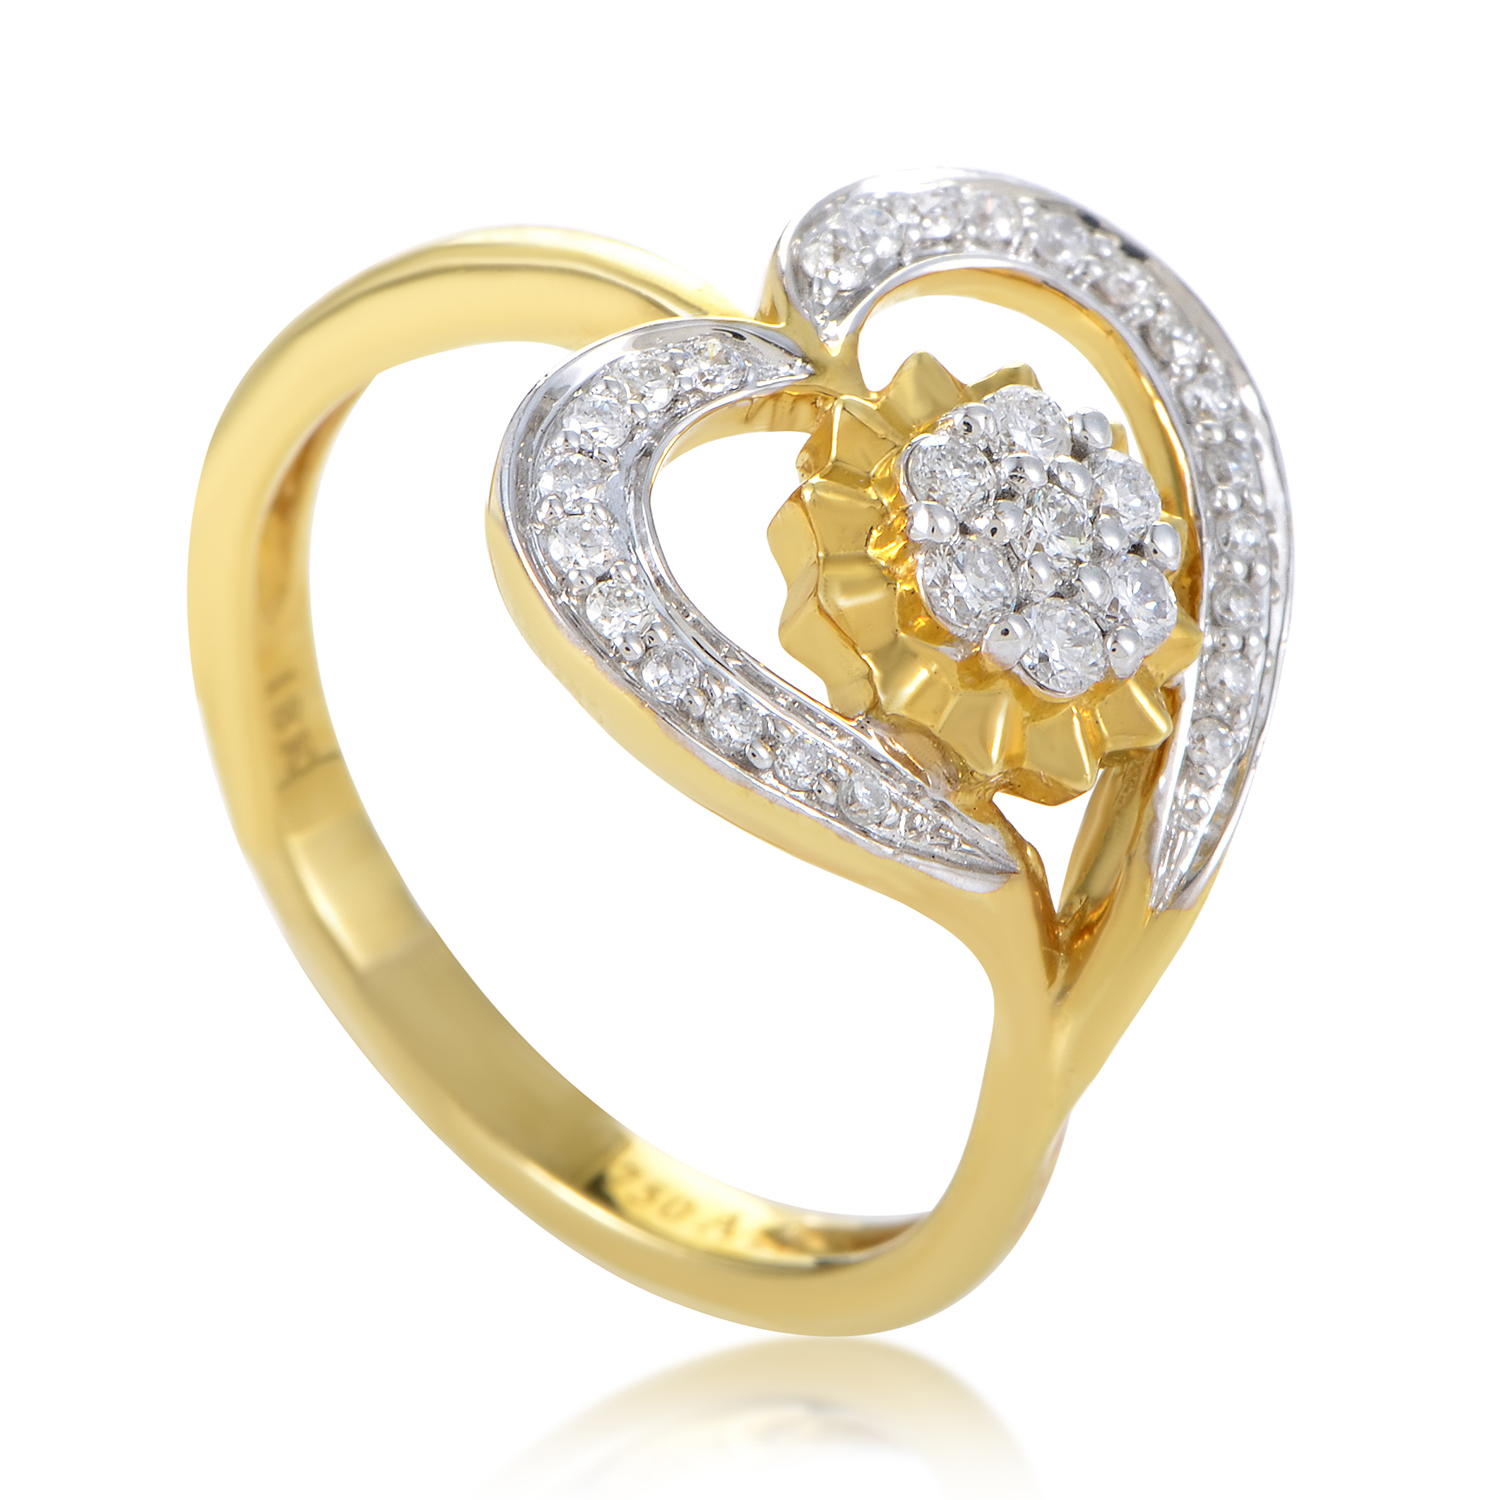 Women's 18K Yellow Gold & Diamond Flower Heart Ring KOA17983RZZ